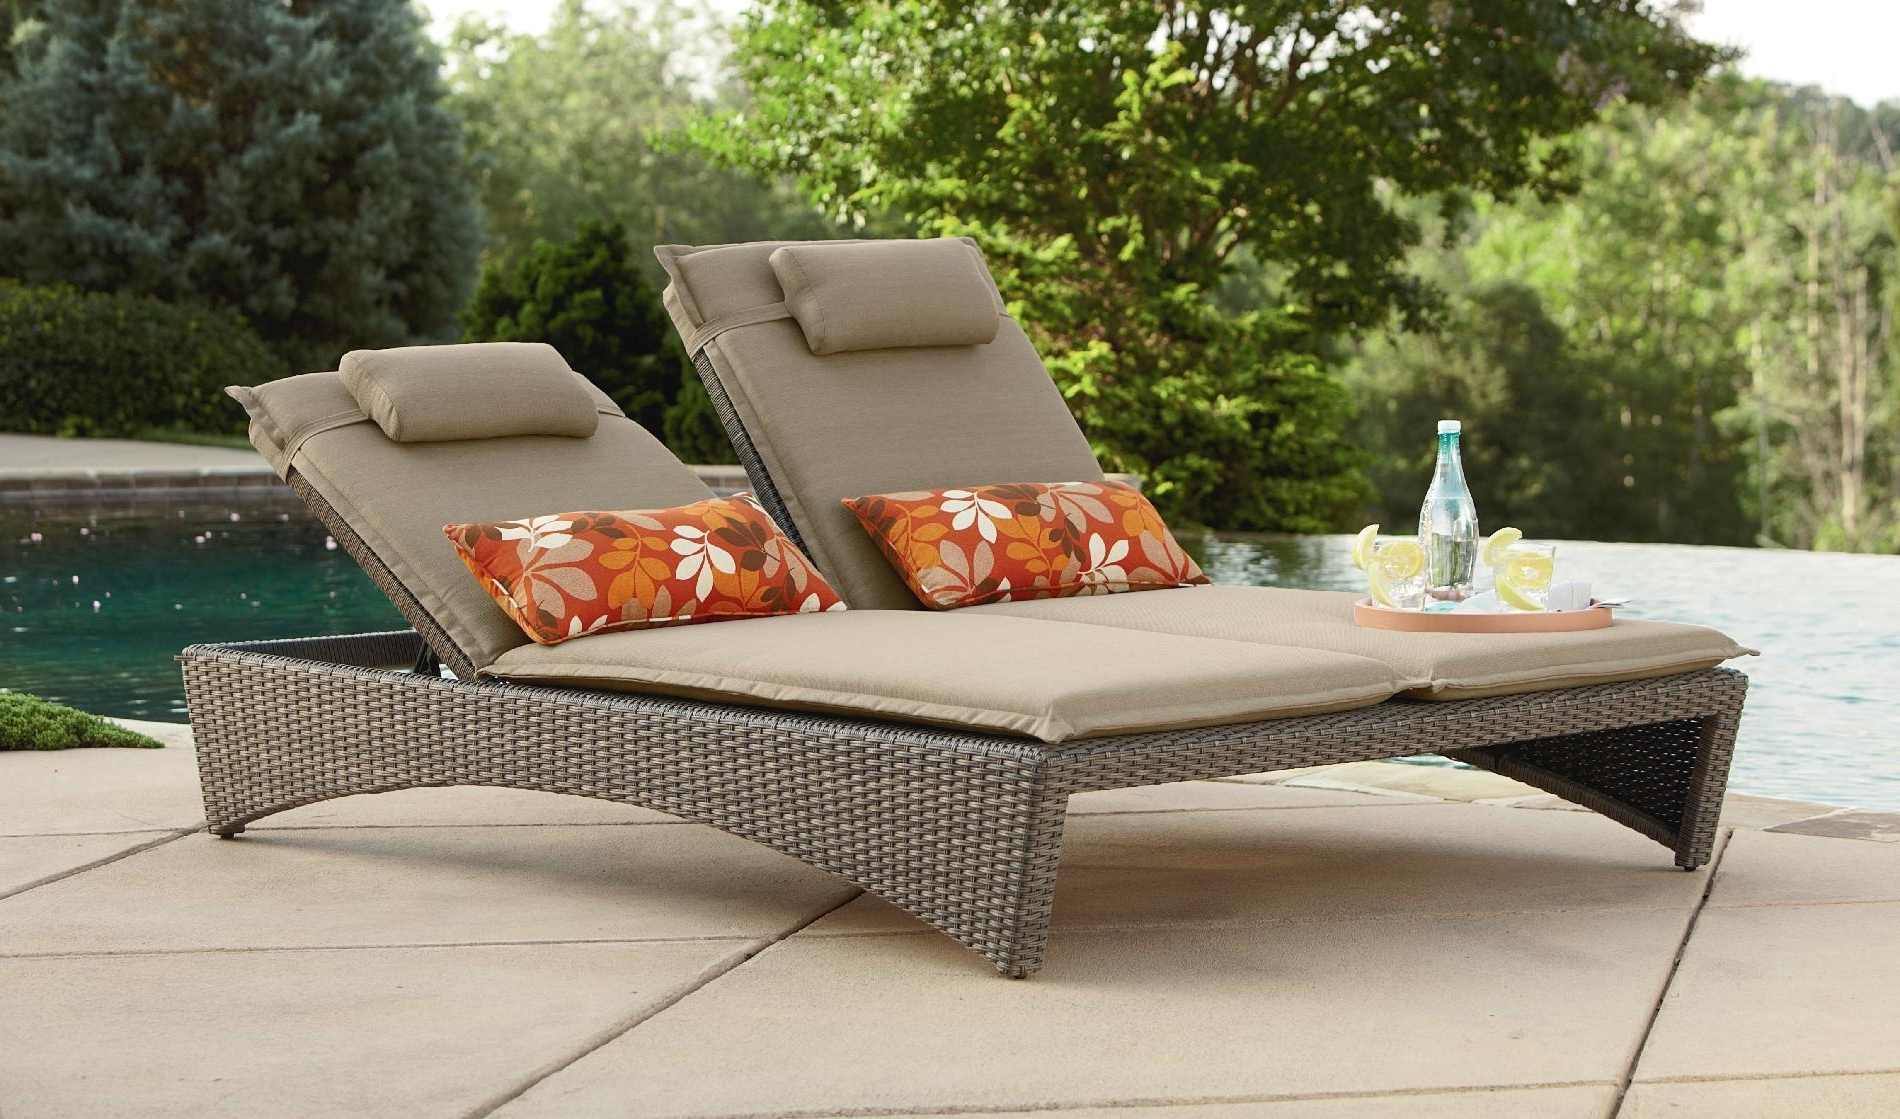 Picture 3 Of 35 – Walmart Patio Lounge Chairs Luxury Patio Pertaining To Most Current Dual Chaise Lounge Chairs (View 14 of 15)